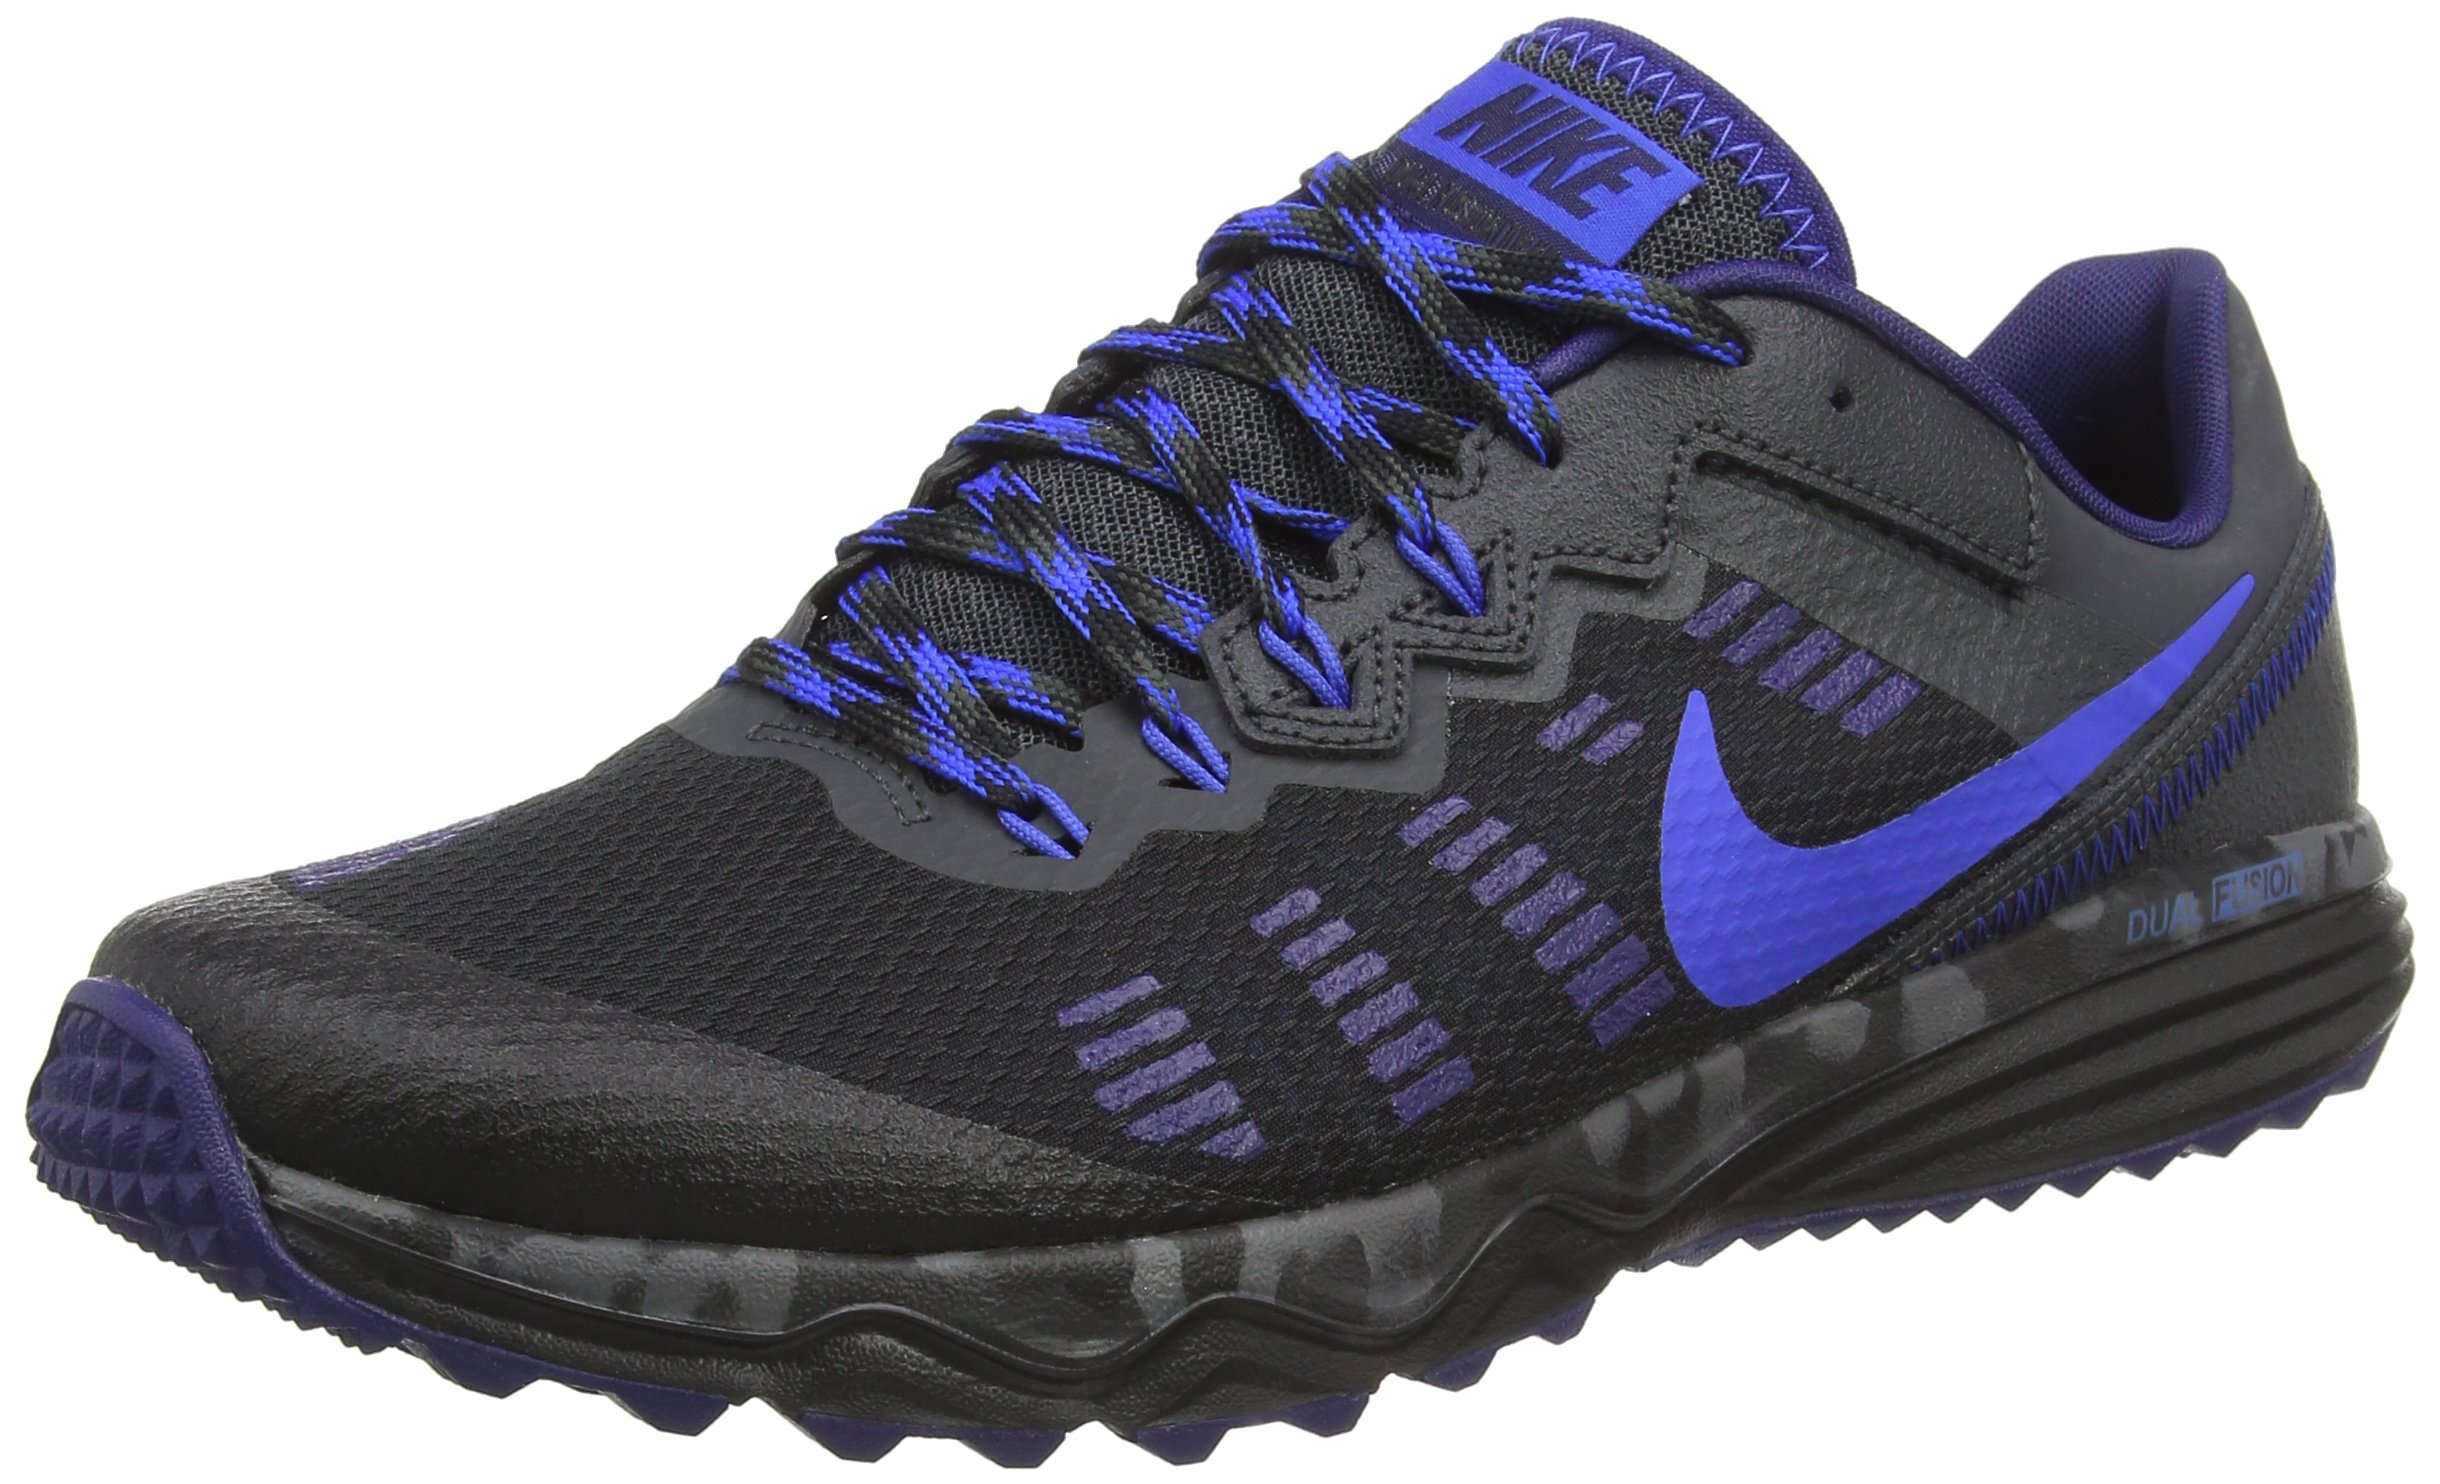 NIKE Men's Dual Fusion Trail 2 Running Shoe (10 D(M) US, Black/Hyper Cobalt/Anthracite/Loyal Blue)